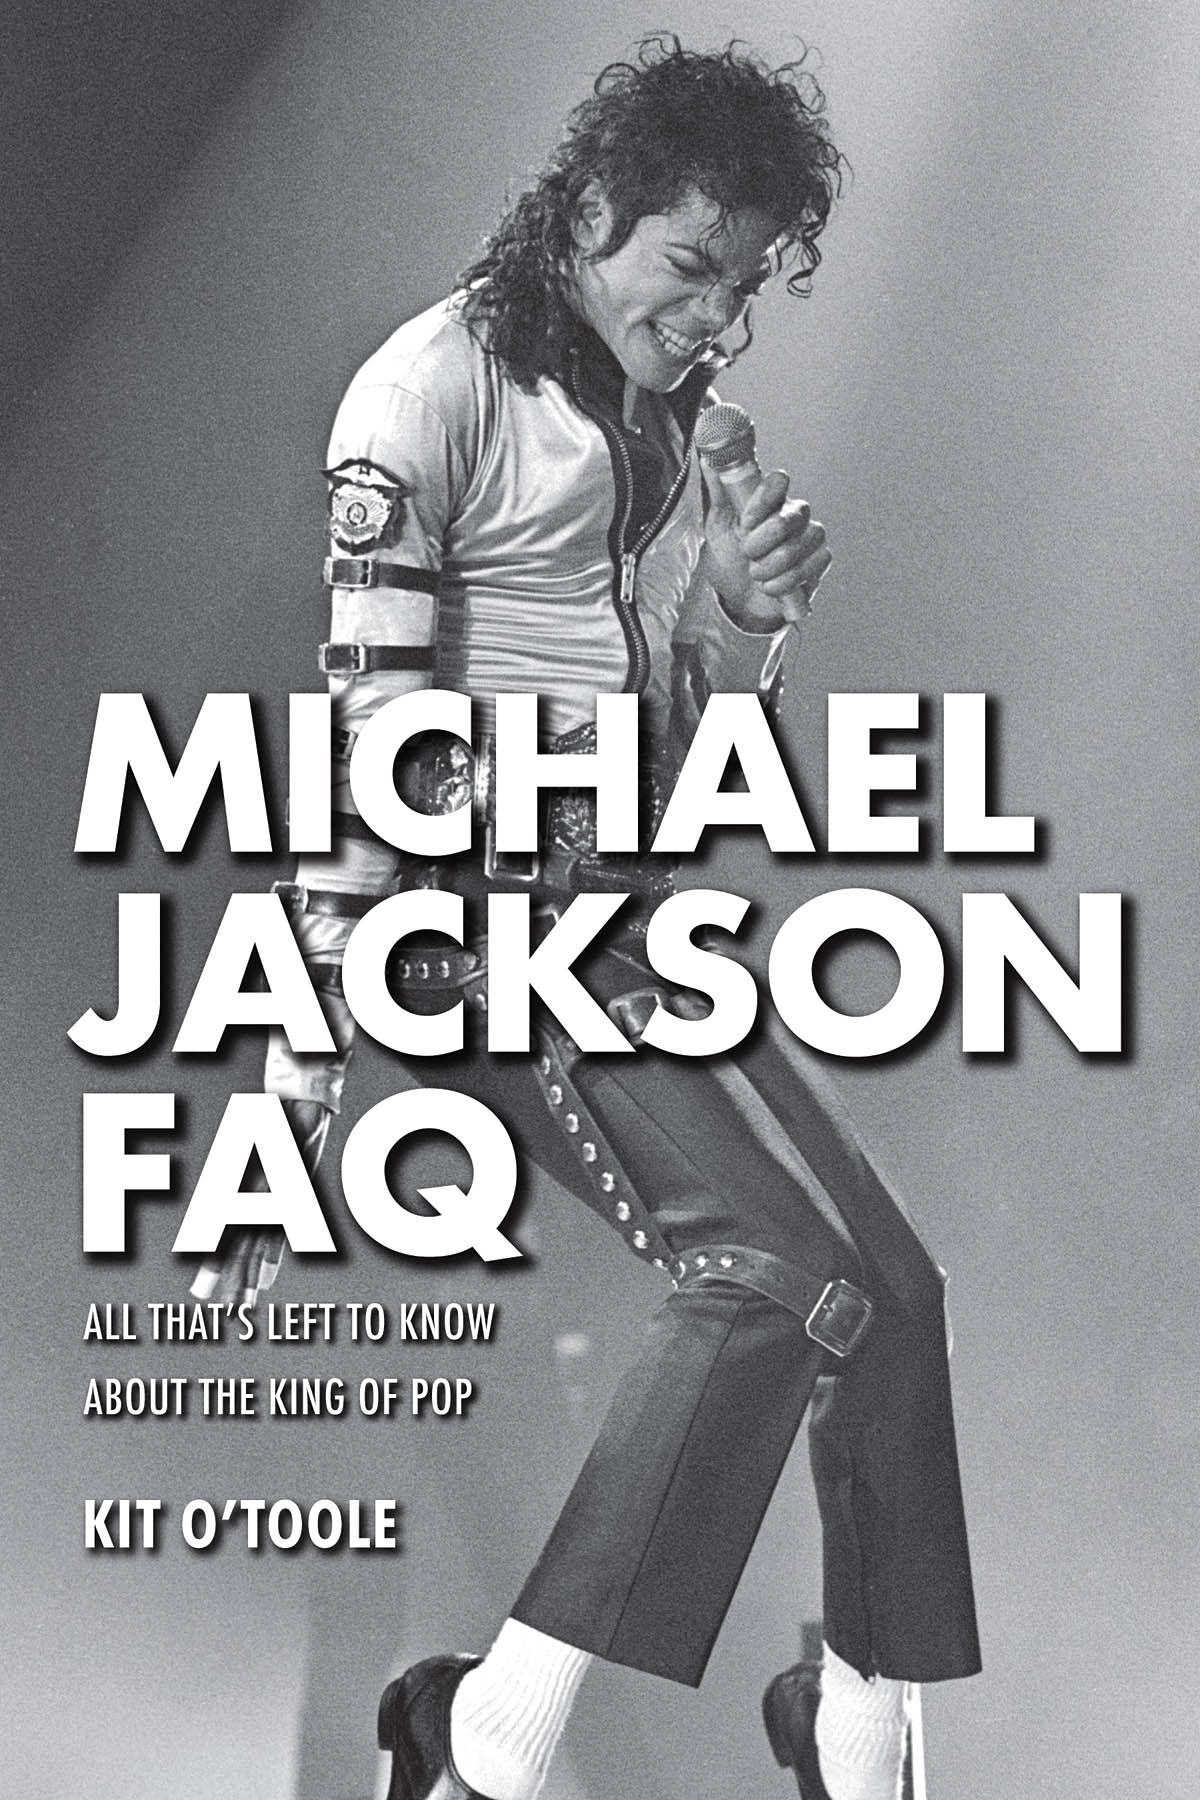 King Jackson Michael Jackson Faq All That S Left To Know About The King Of Pop